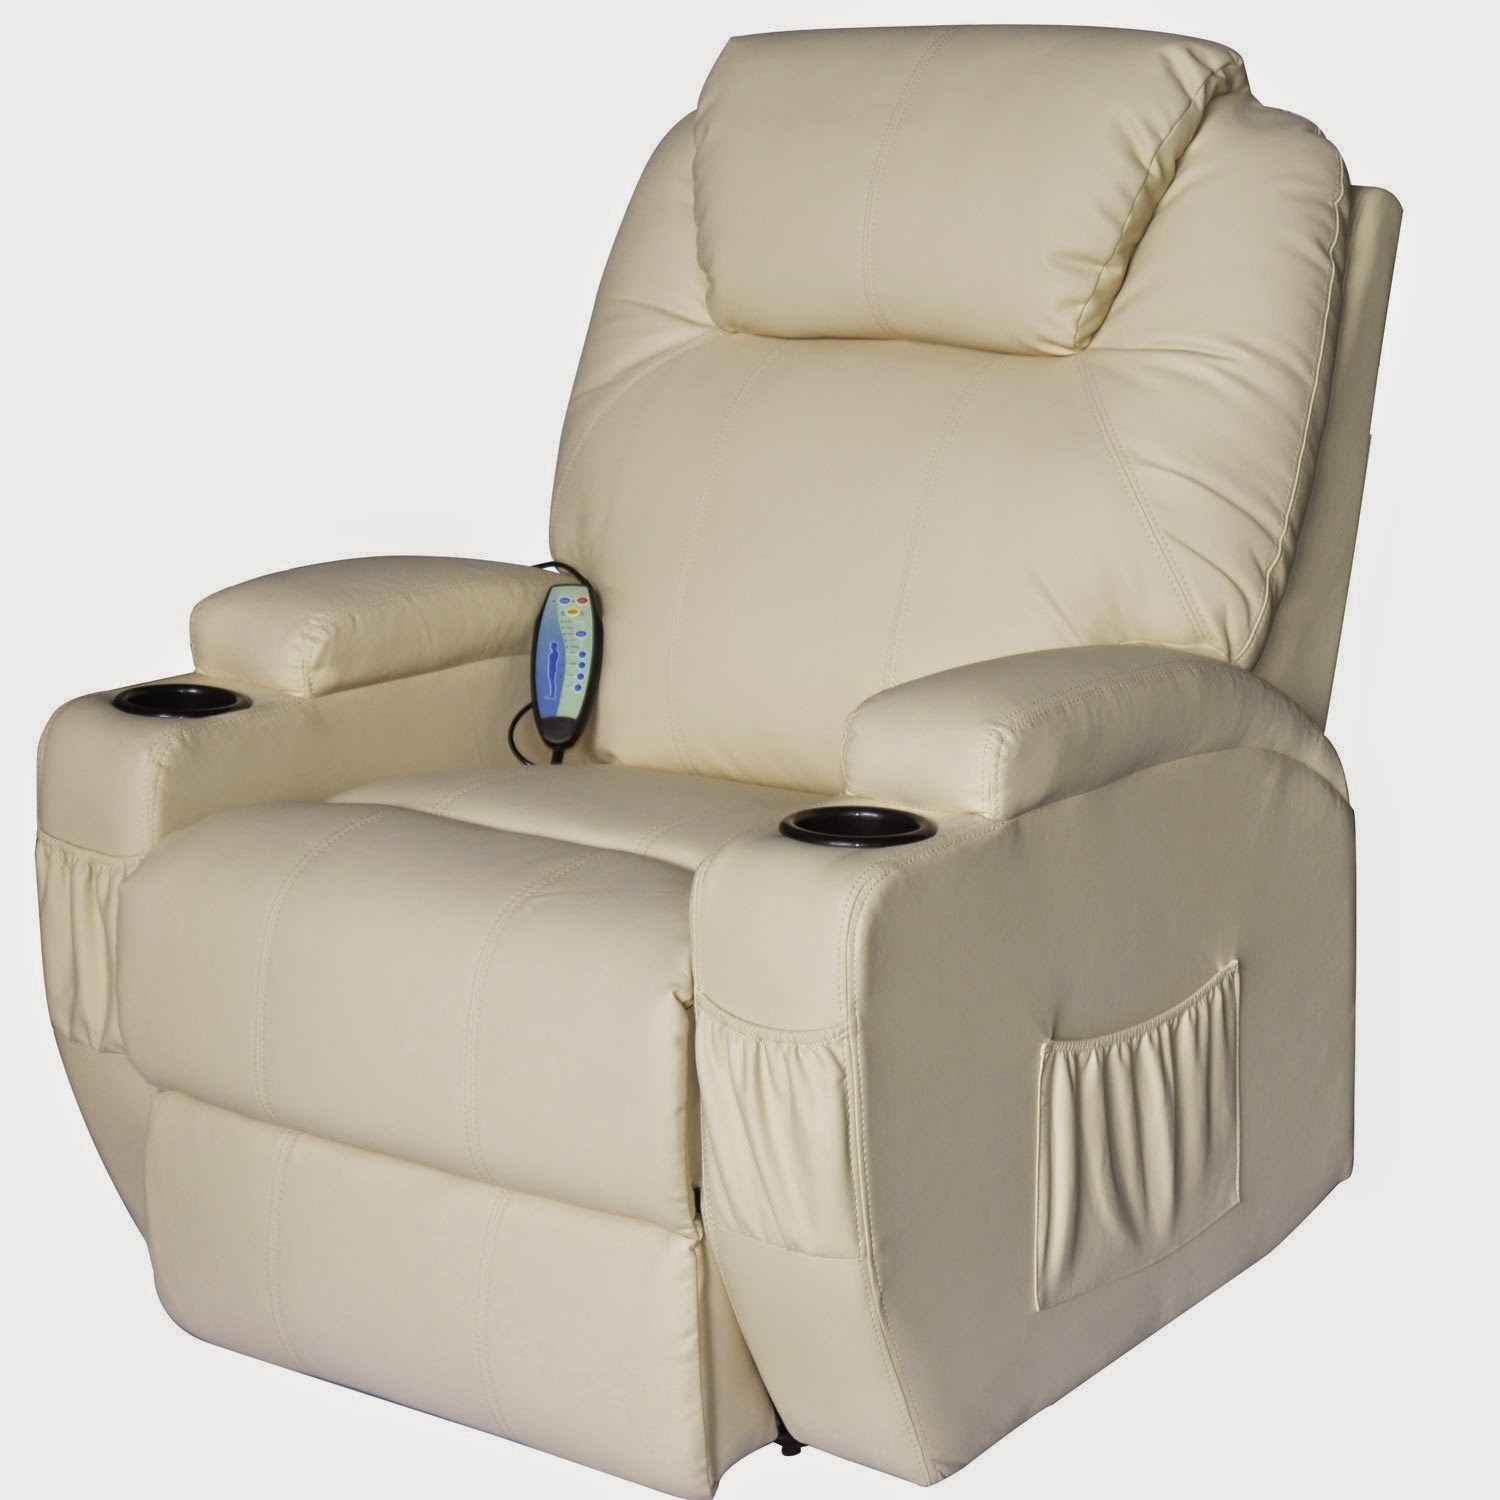 Power Recliner Chairs Reviews Chair Covers For Easter The Best Reclining Leather Sofa White